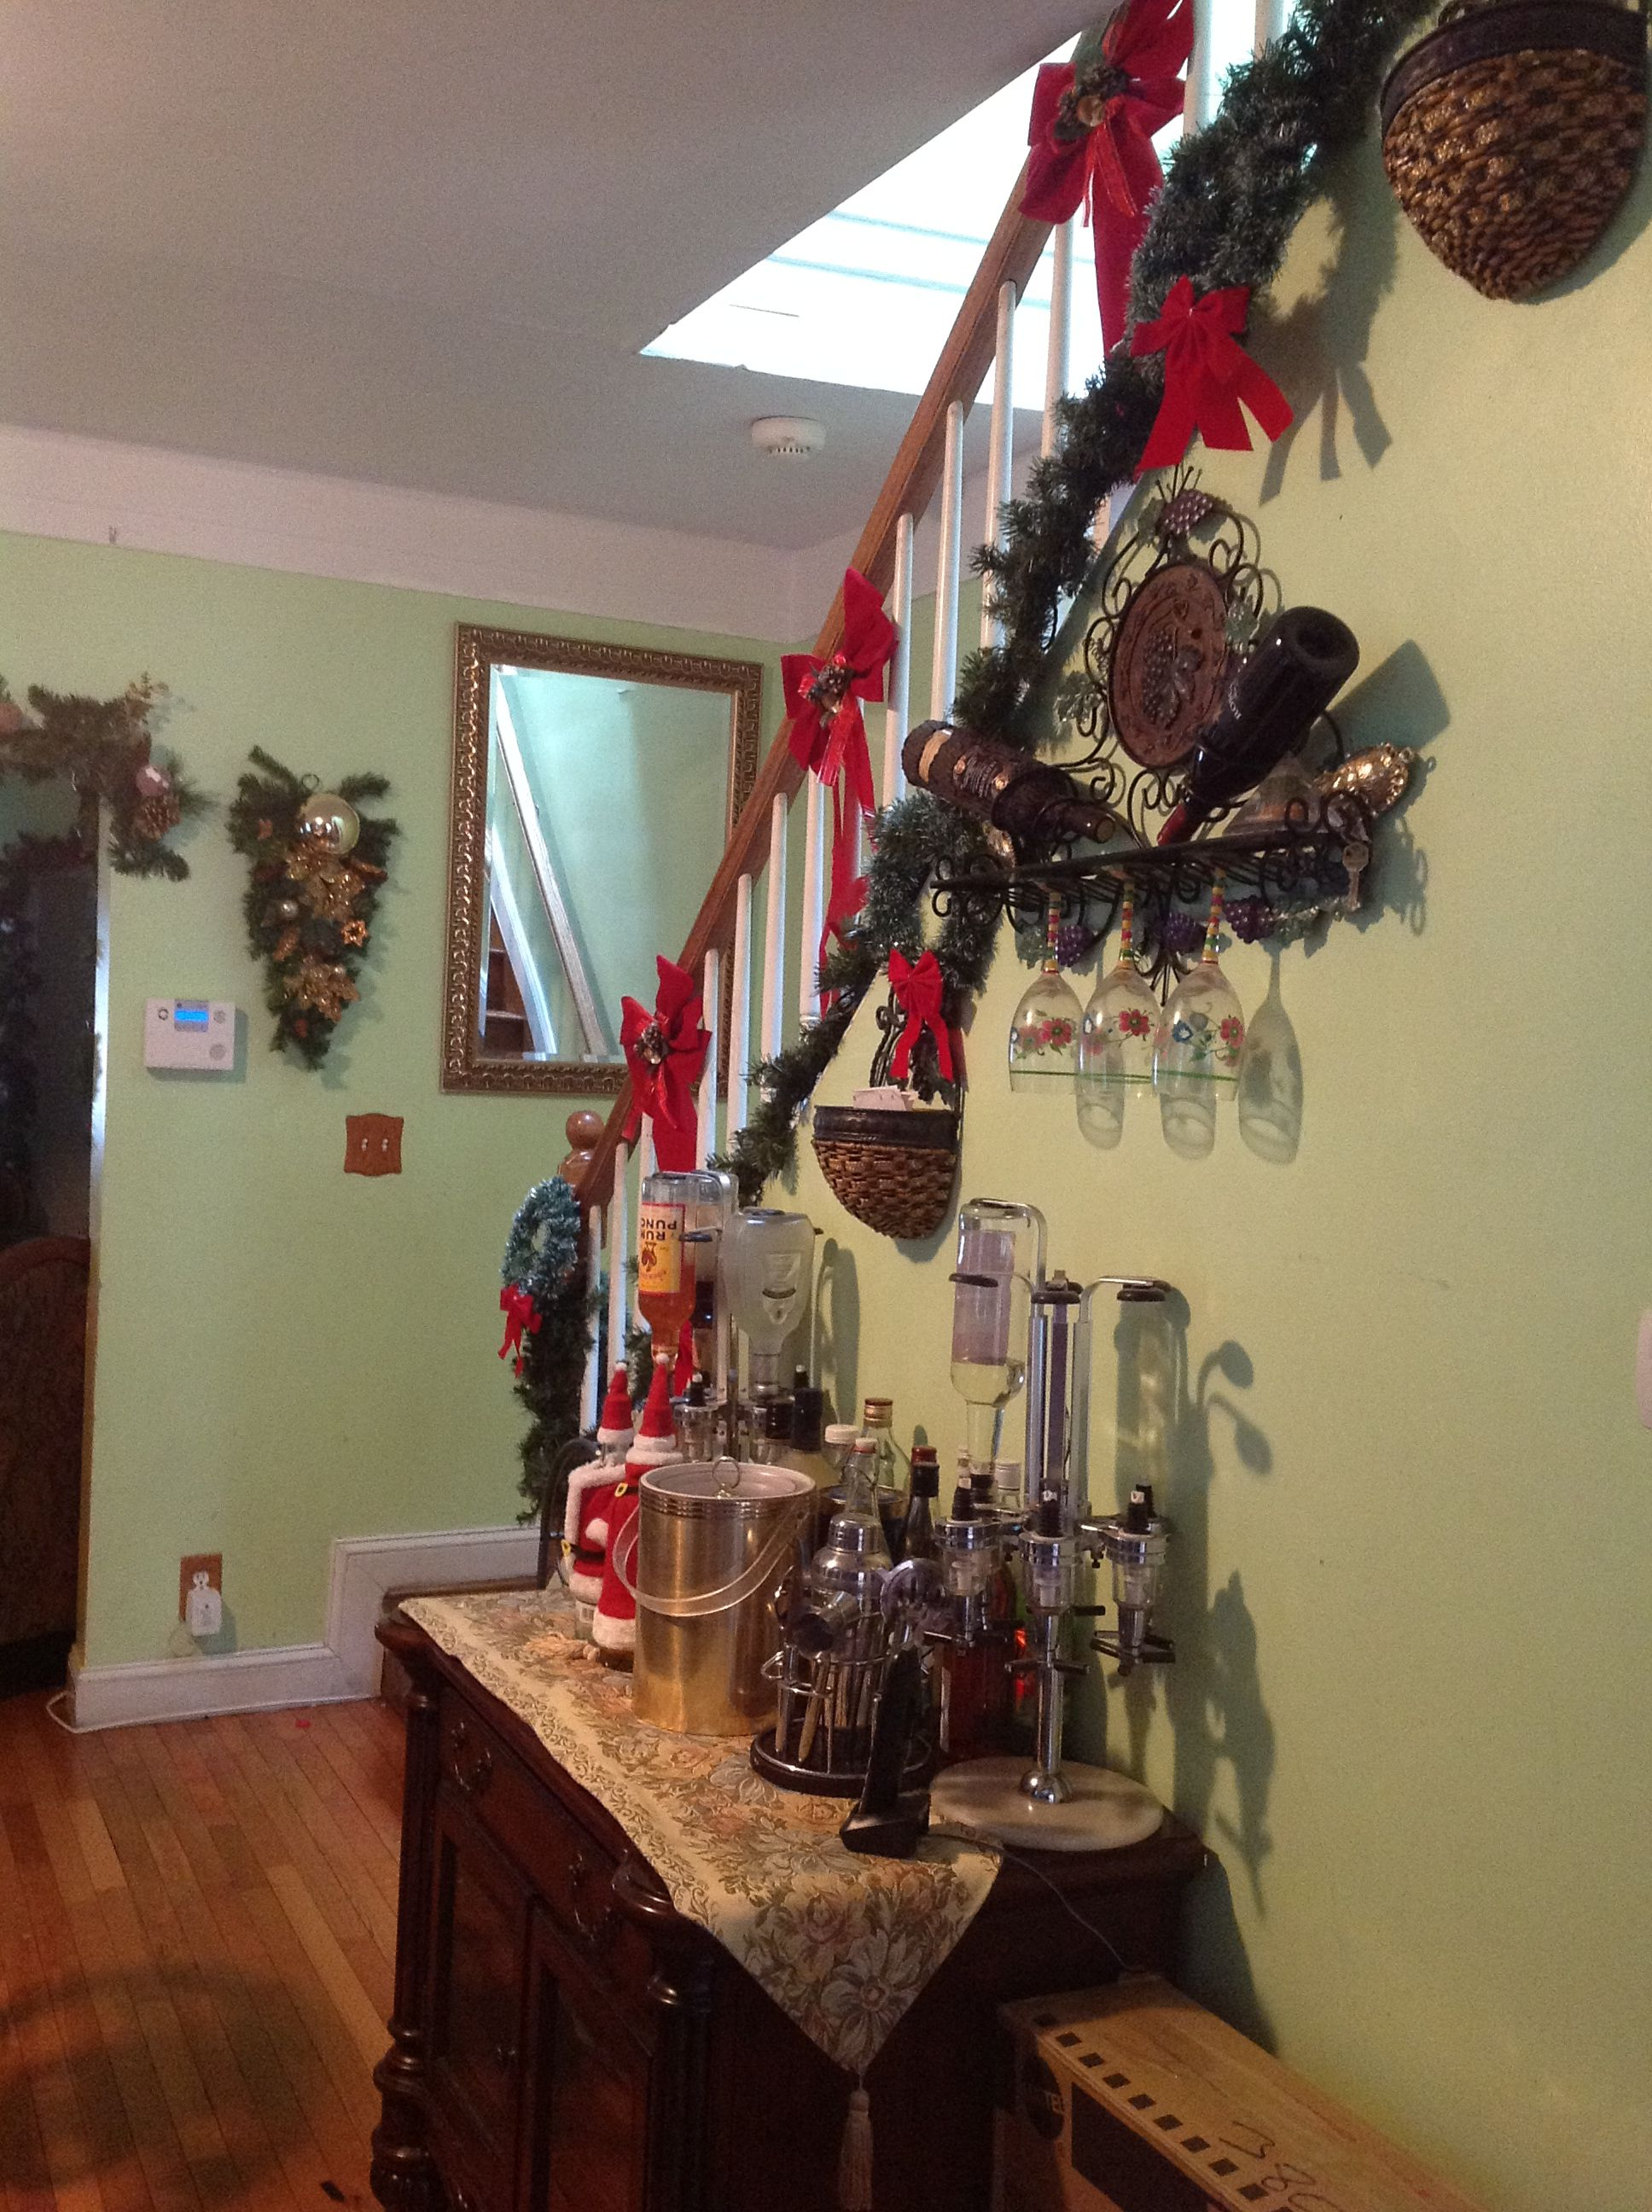 Christmas Decorations * The Stair Case And Bar